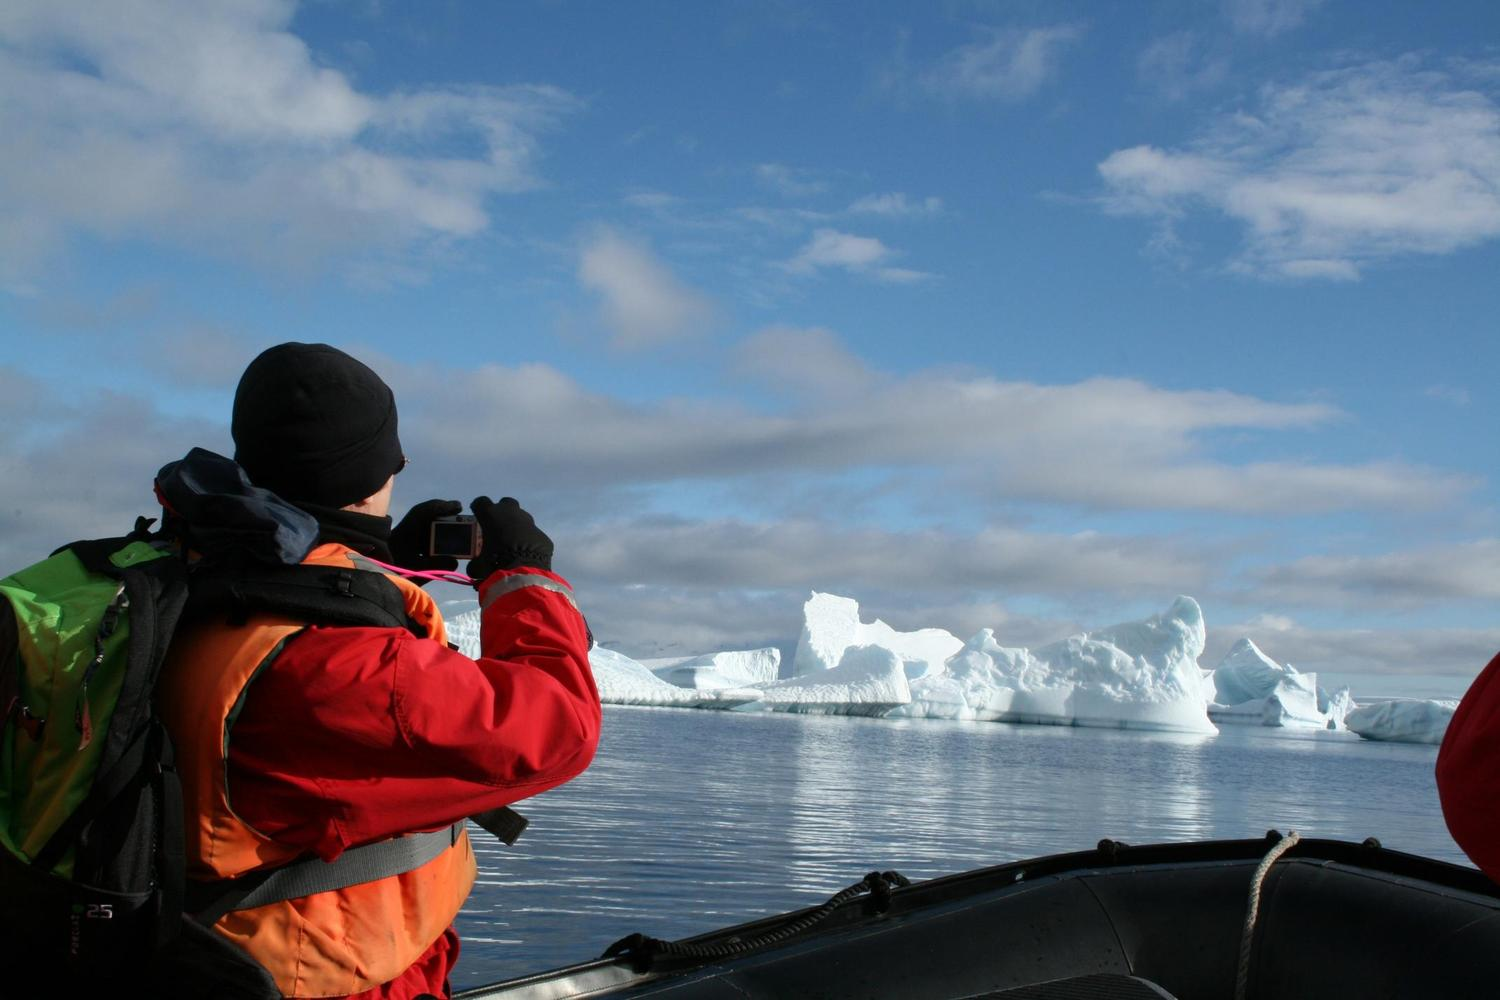 Zodiac rides get you close to icebergs